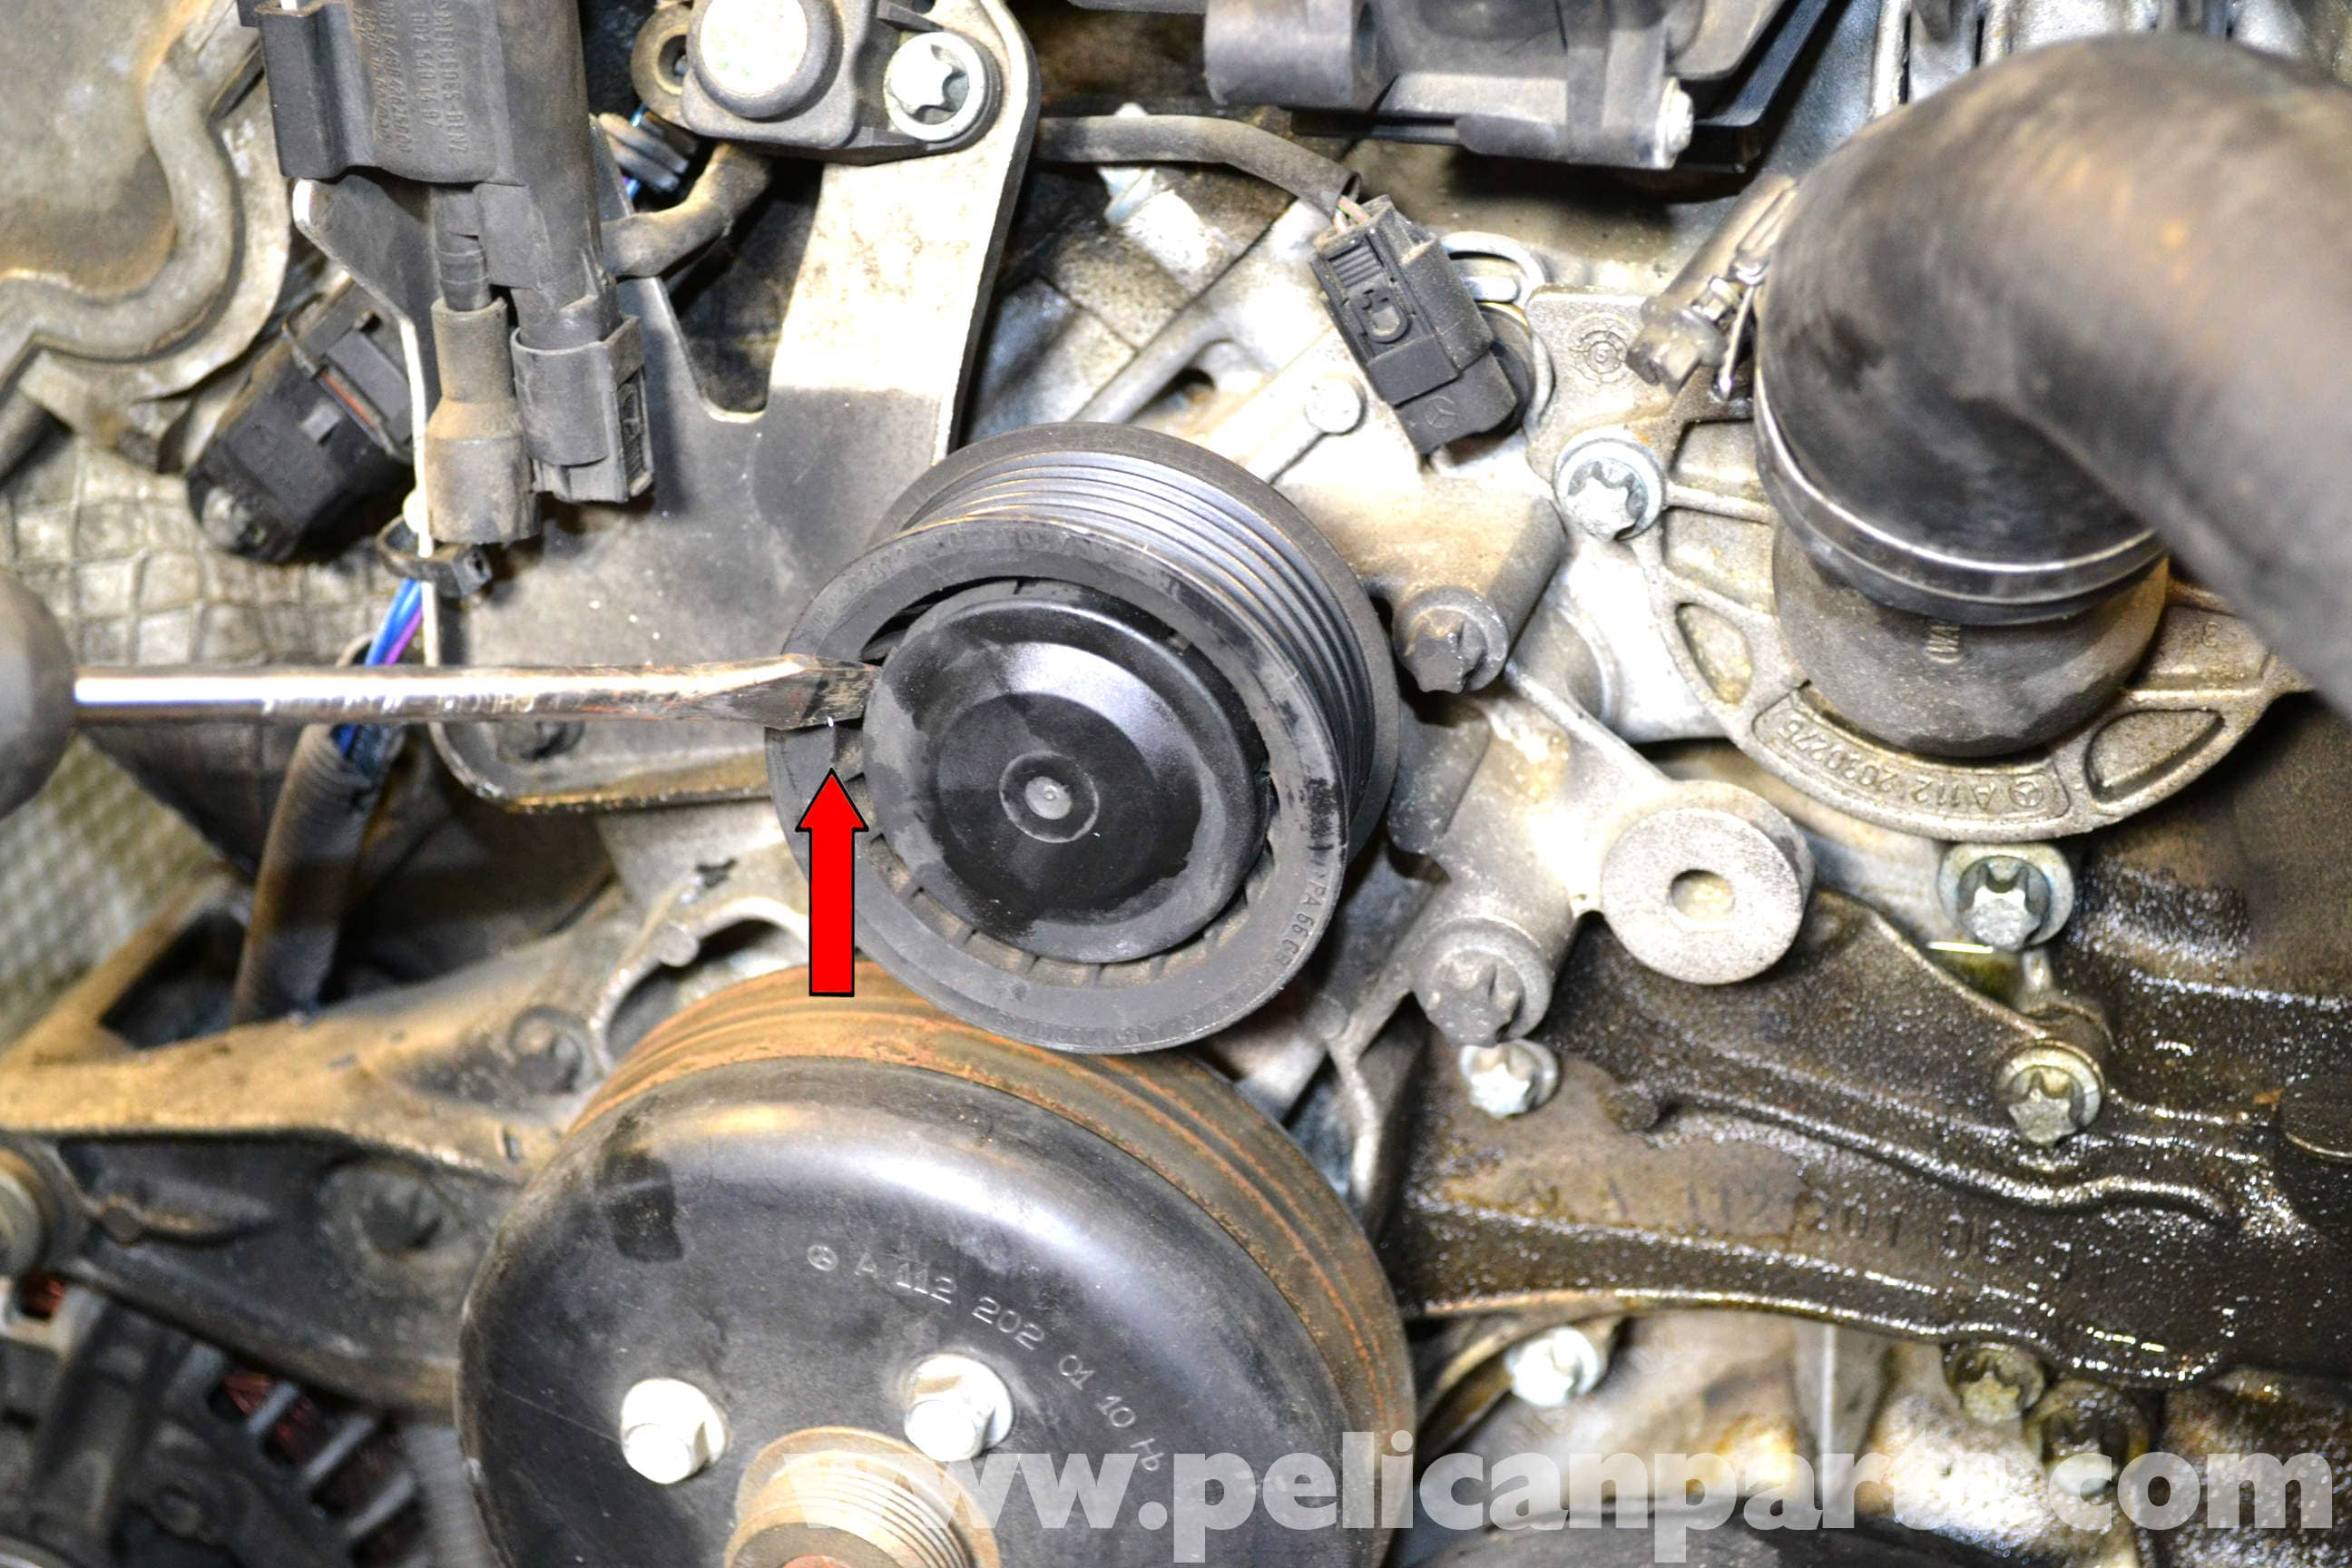 Mercedes-Benz W203 Water Pump Replacement - (2001-2007 ...